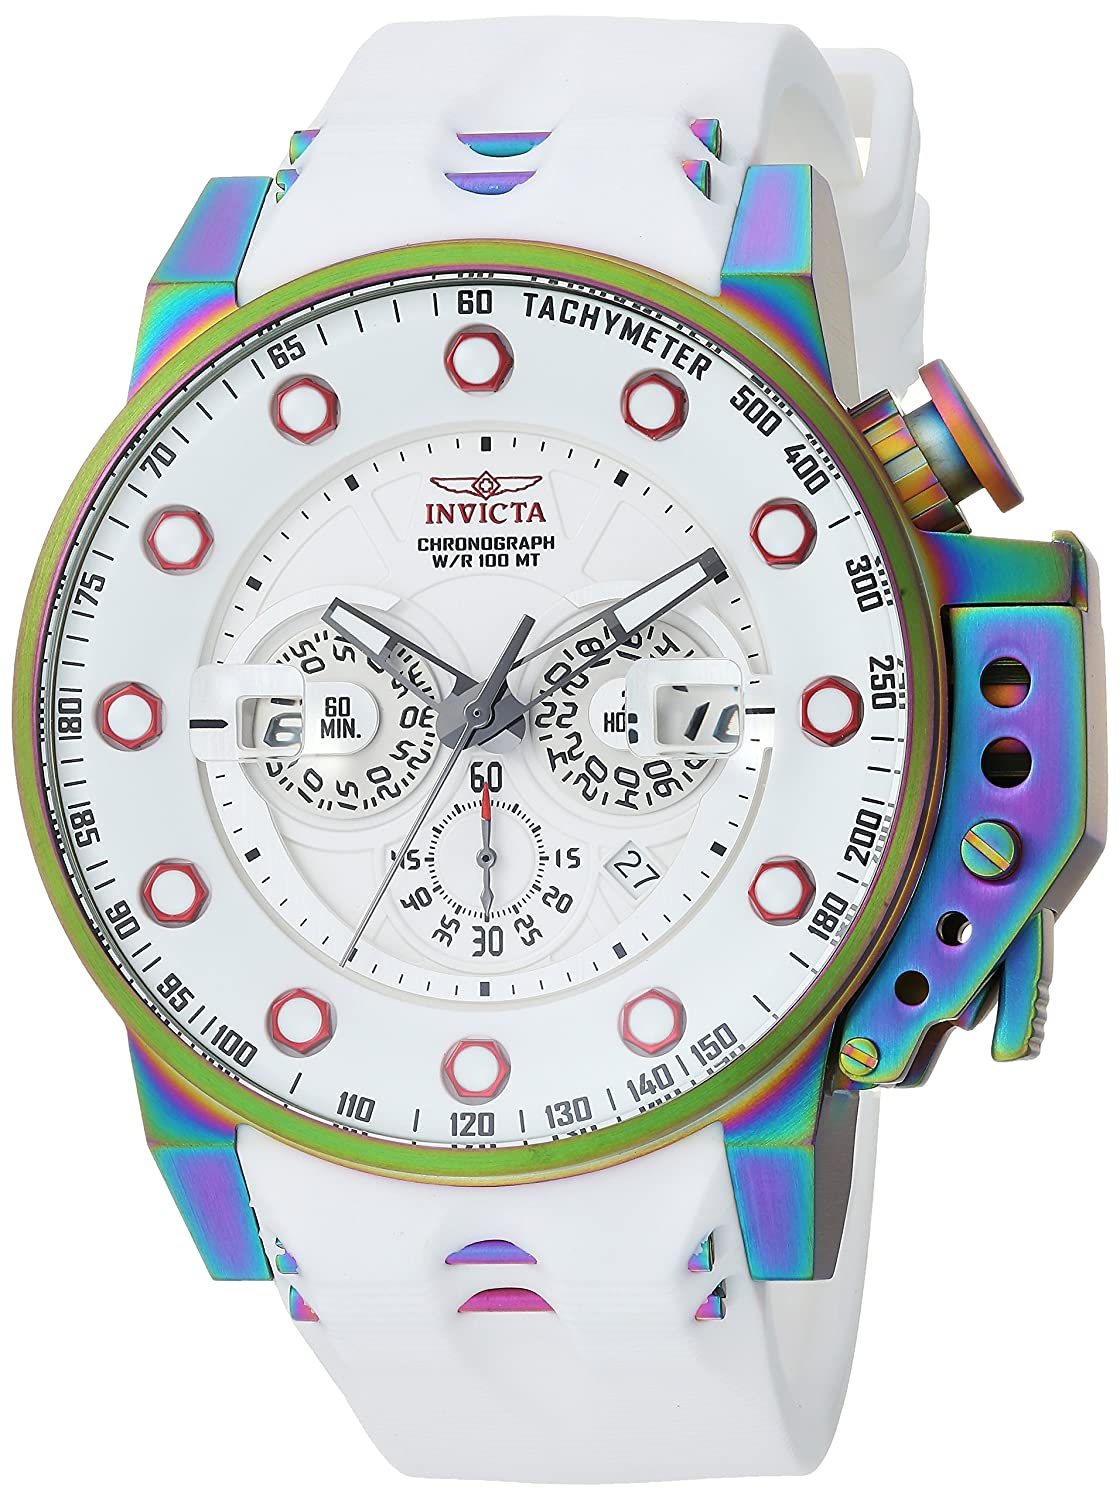 Amazon.com: Invicta Mens I- I-Force Stainless Steel Quartz Watch with Silicone Strap, White, 24 (Model: 25277: Watches